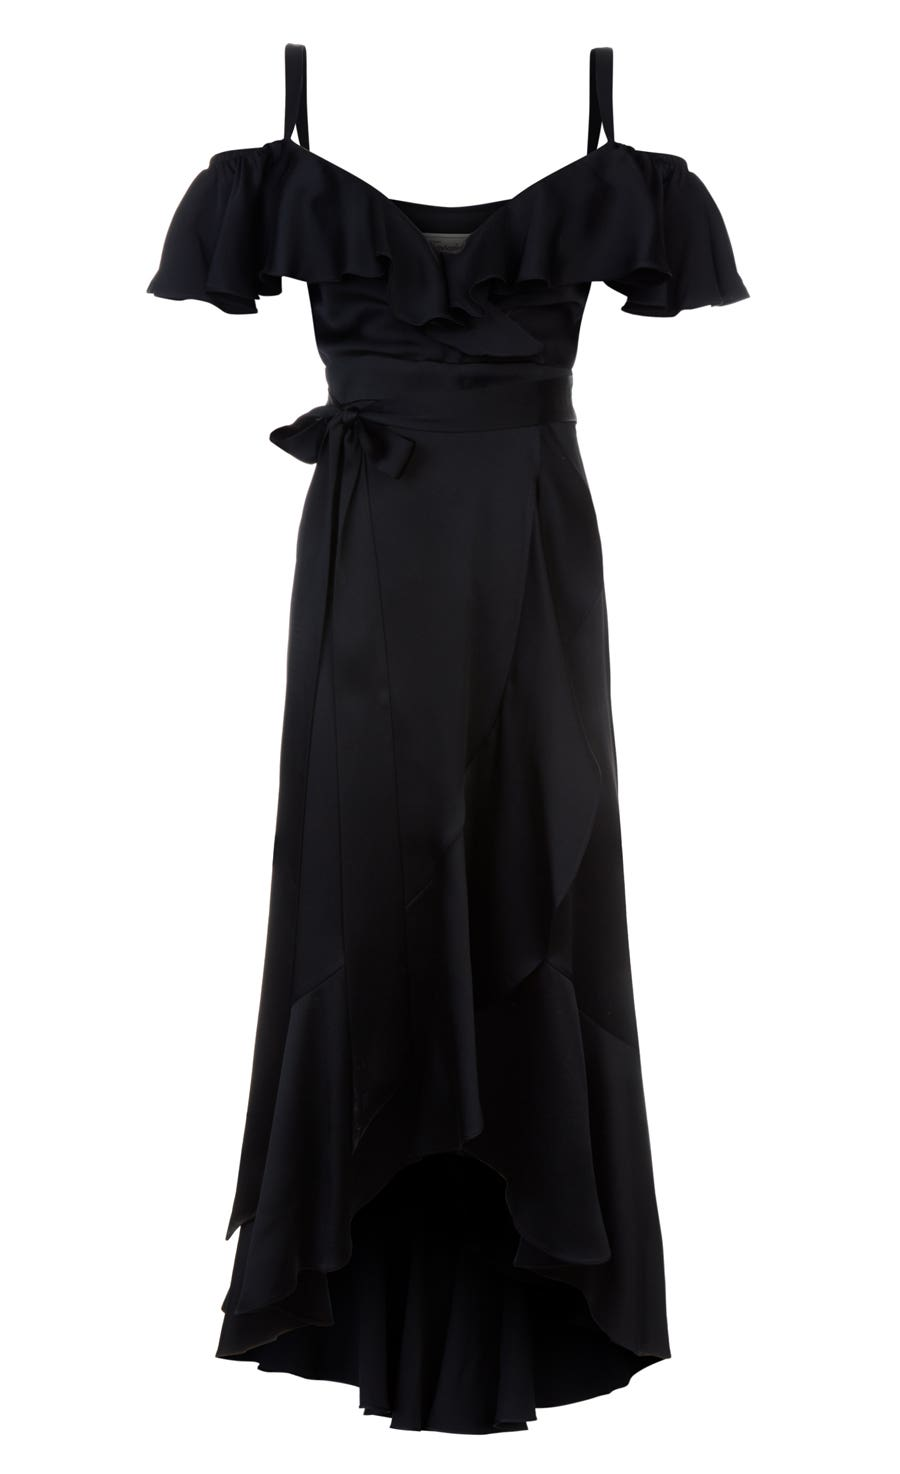 Carnation Dress, Black